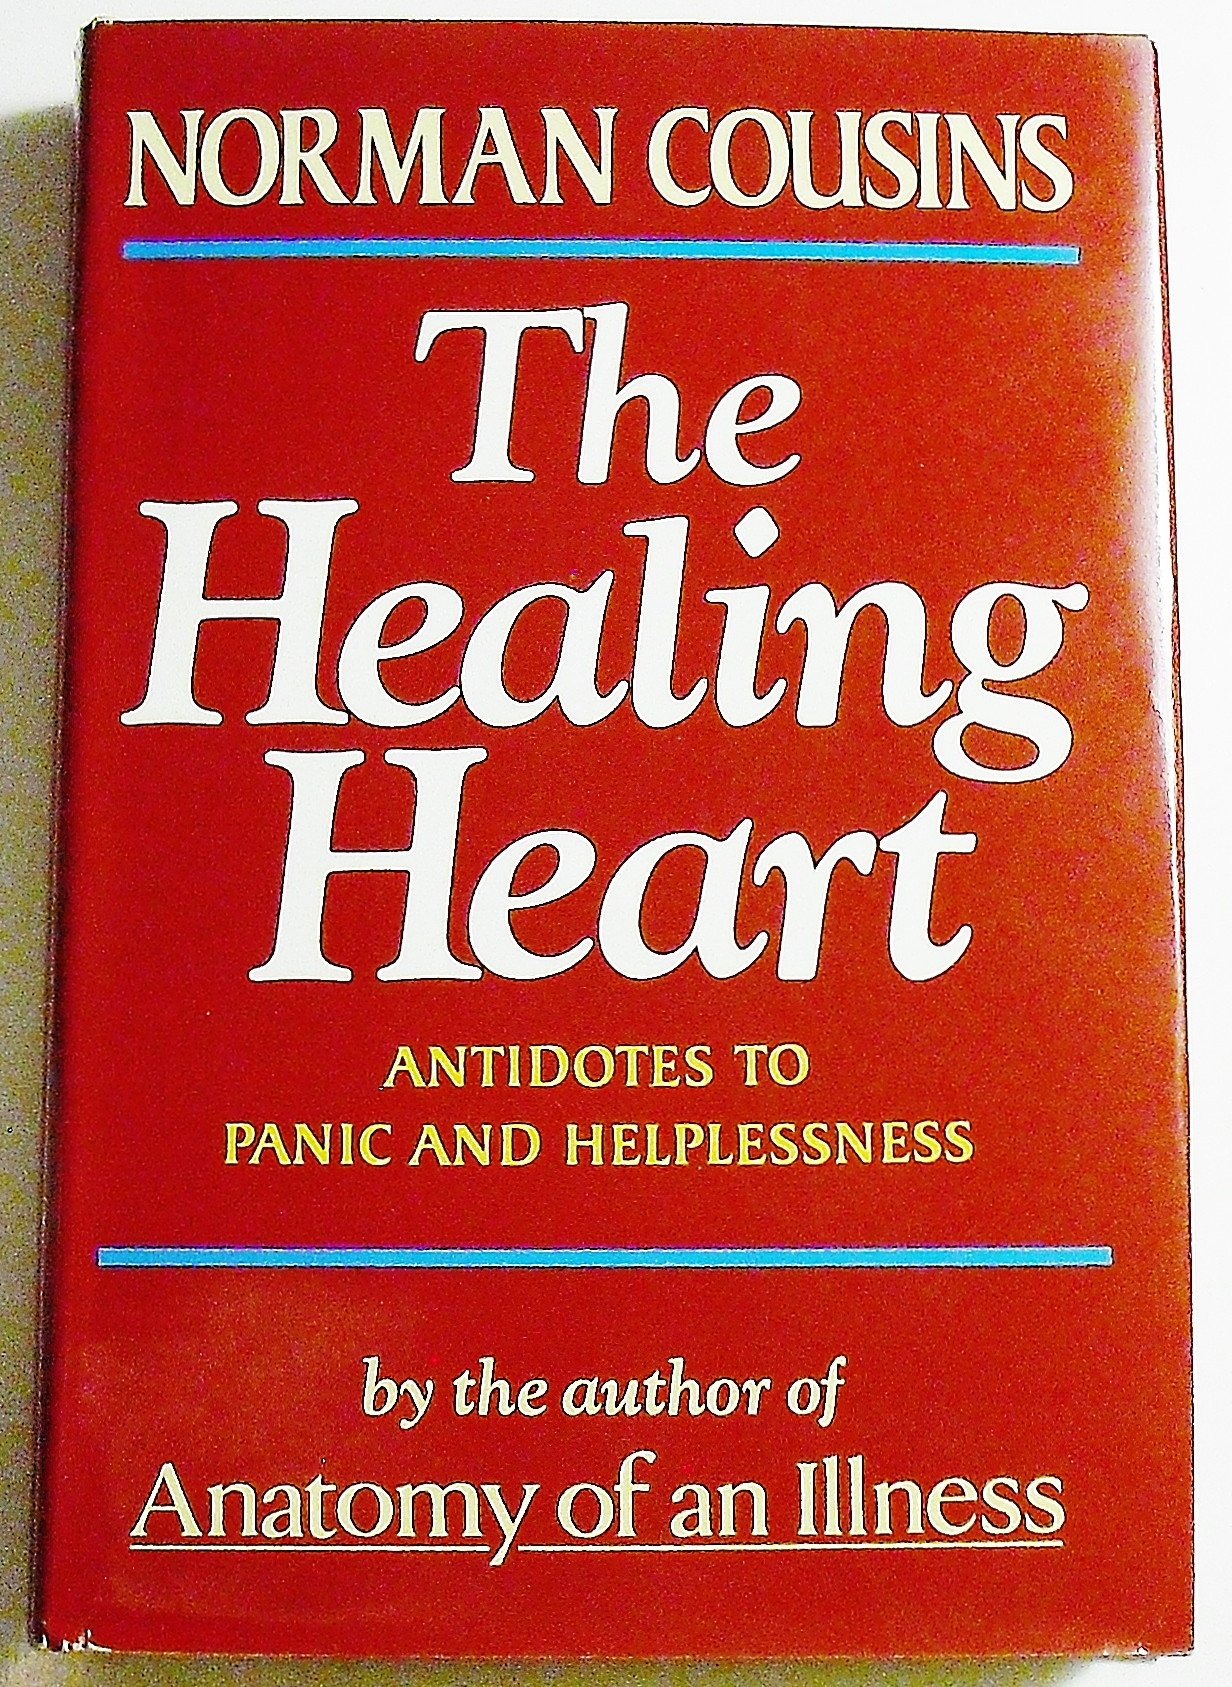 Healing Heart, Antidotes to Panic and Helplessness: Norman Cousins ...